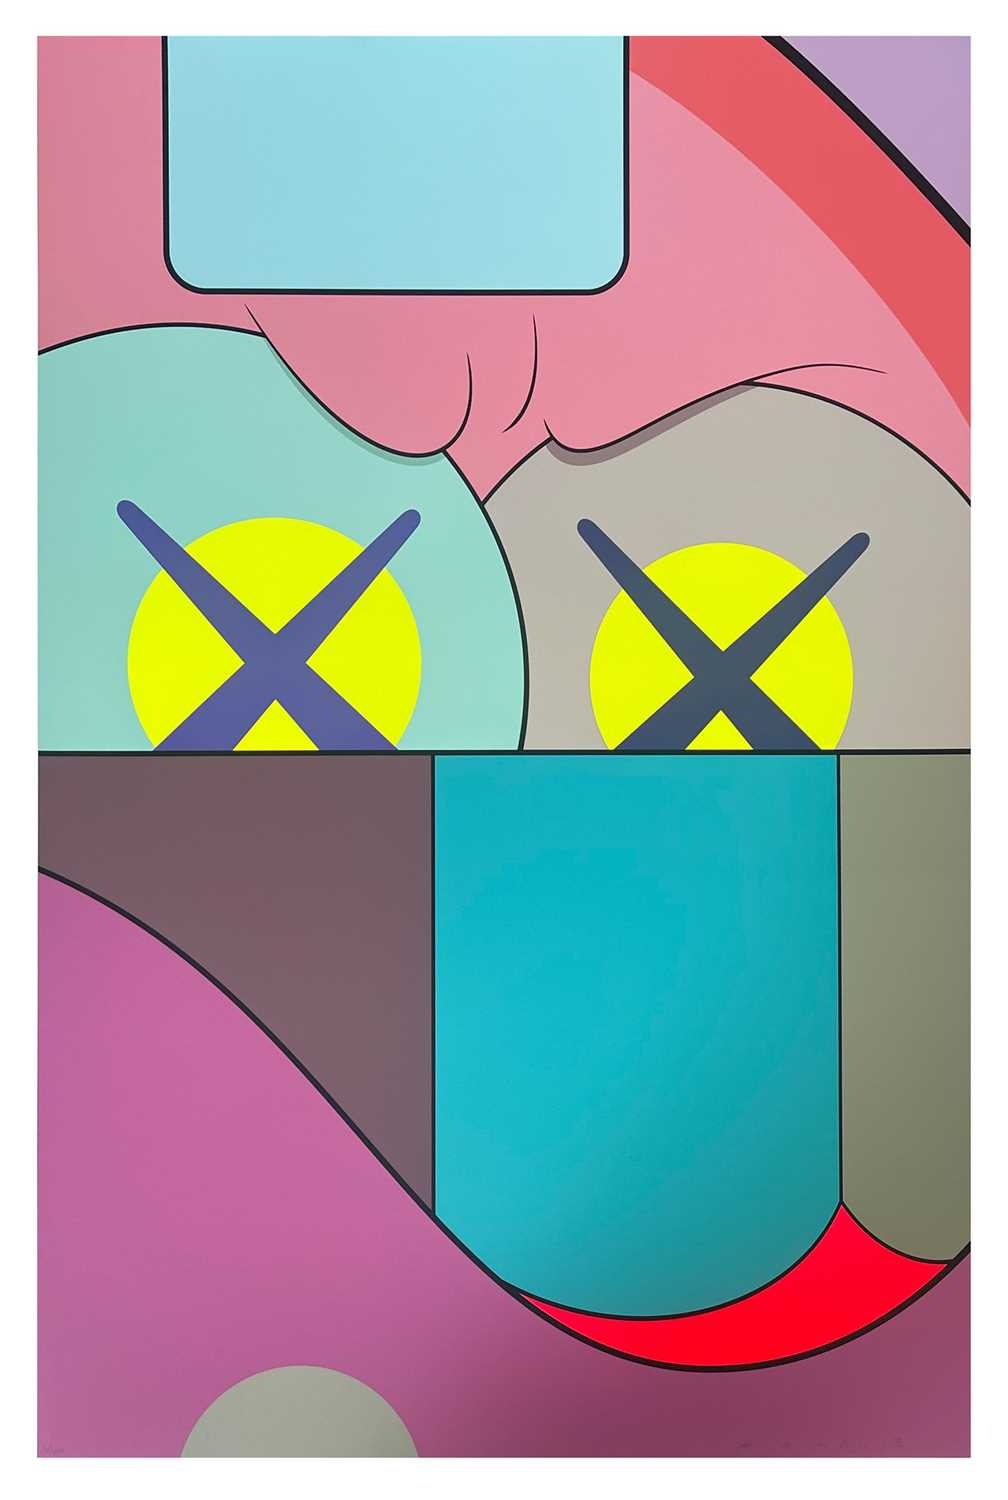 Lot 10 - Kaws (American 1974-), Untitled (from Ups and Downs portfolio), 2013